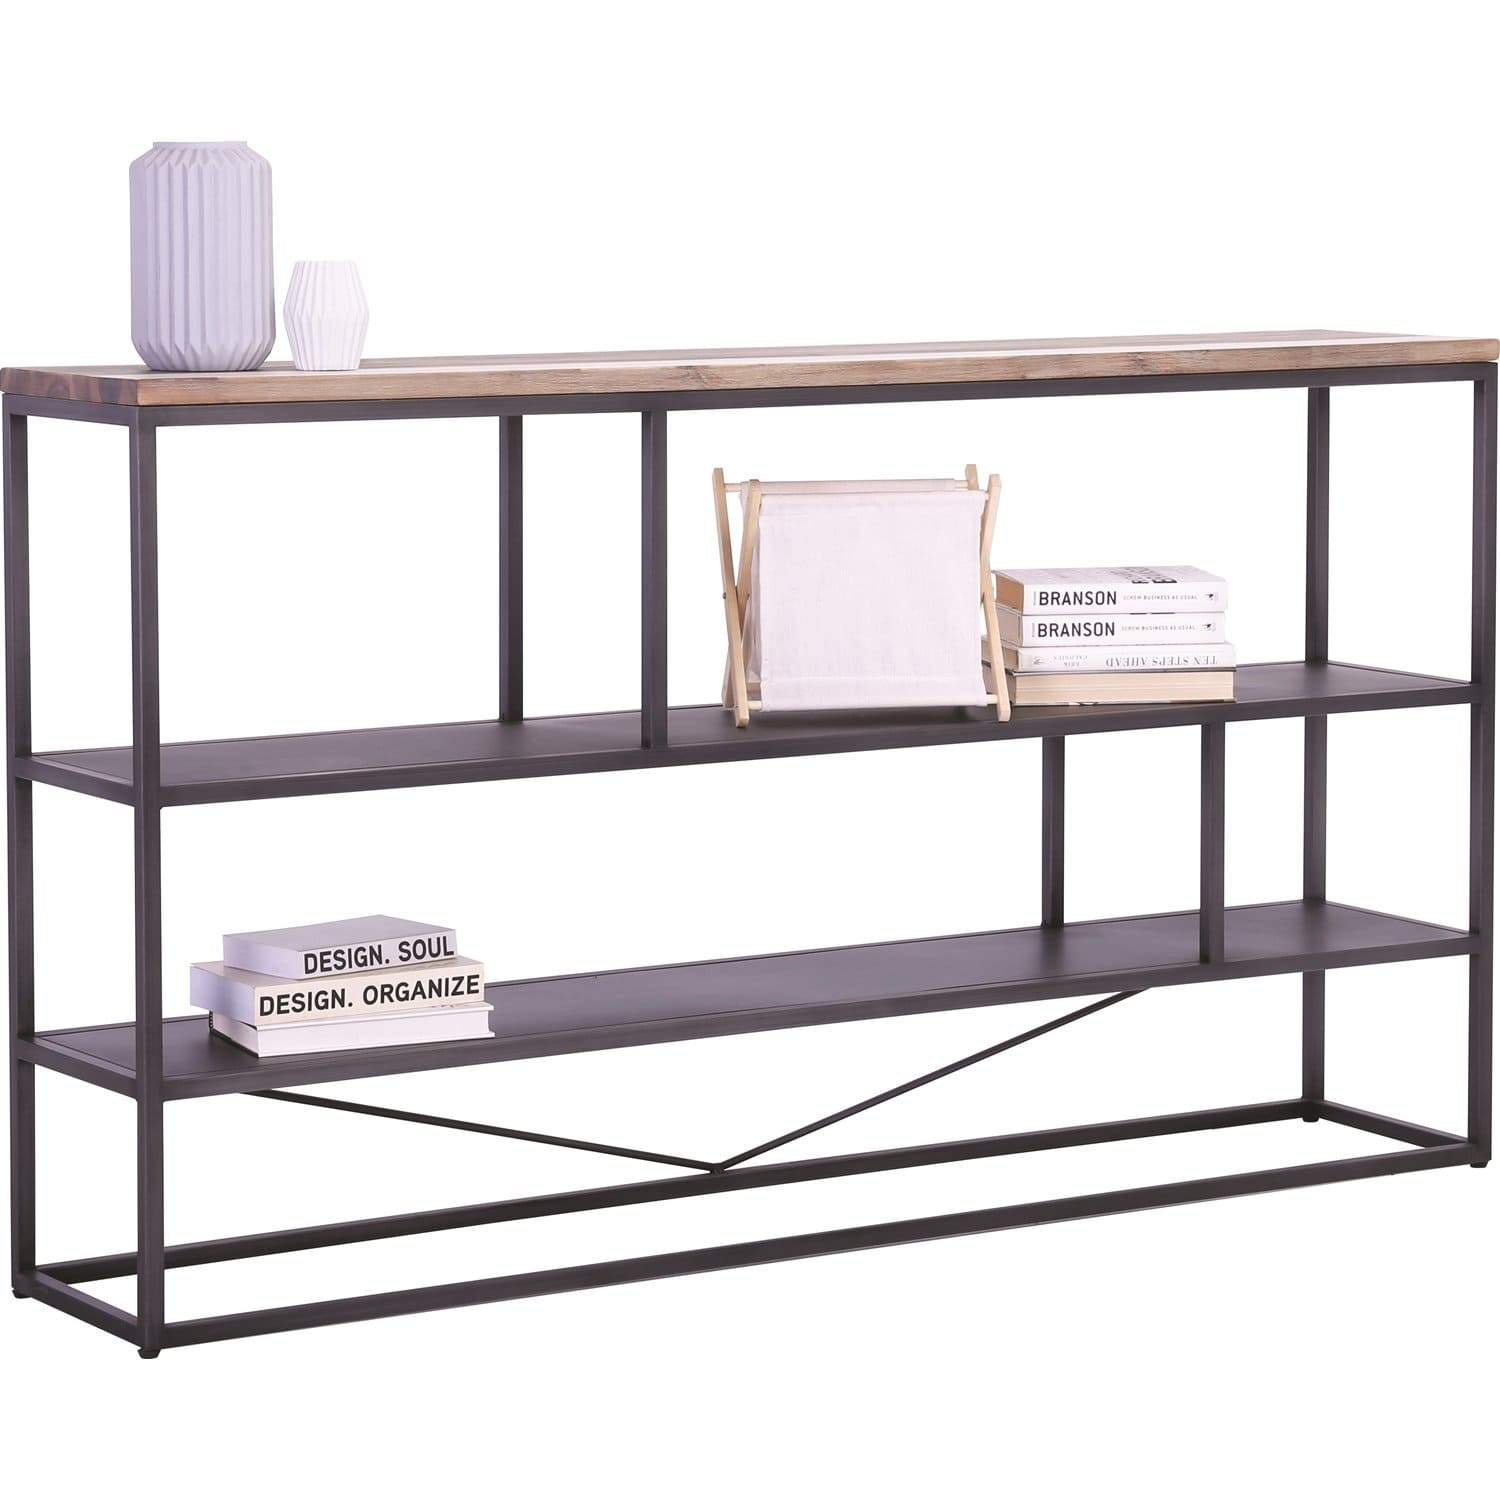 mfdesign88 Dachi Low Book Shelf With Anthracite Frame